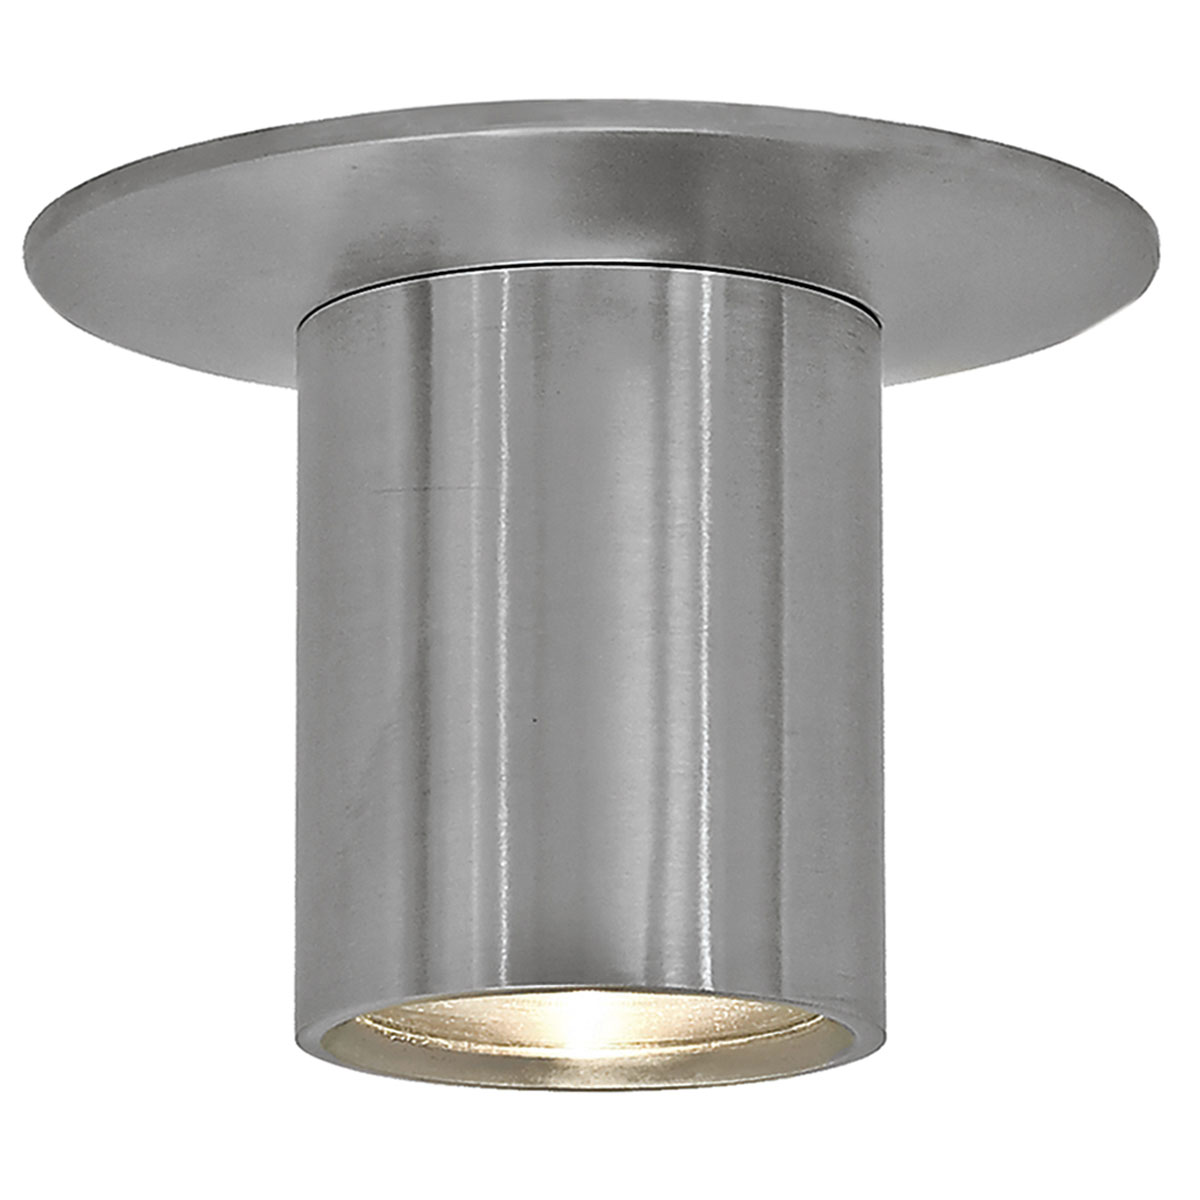 Rocky h1 12 volt ceiling mount downlight by pureedge lighting roc rocky h1 12 volt ceiling mount downlight by pureedge lighting aloadofball Gallery